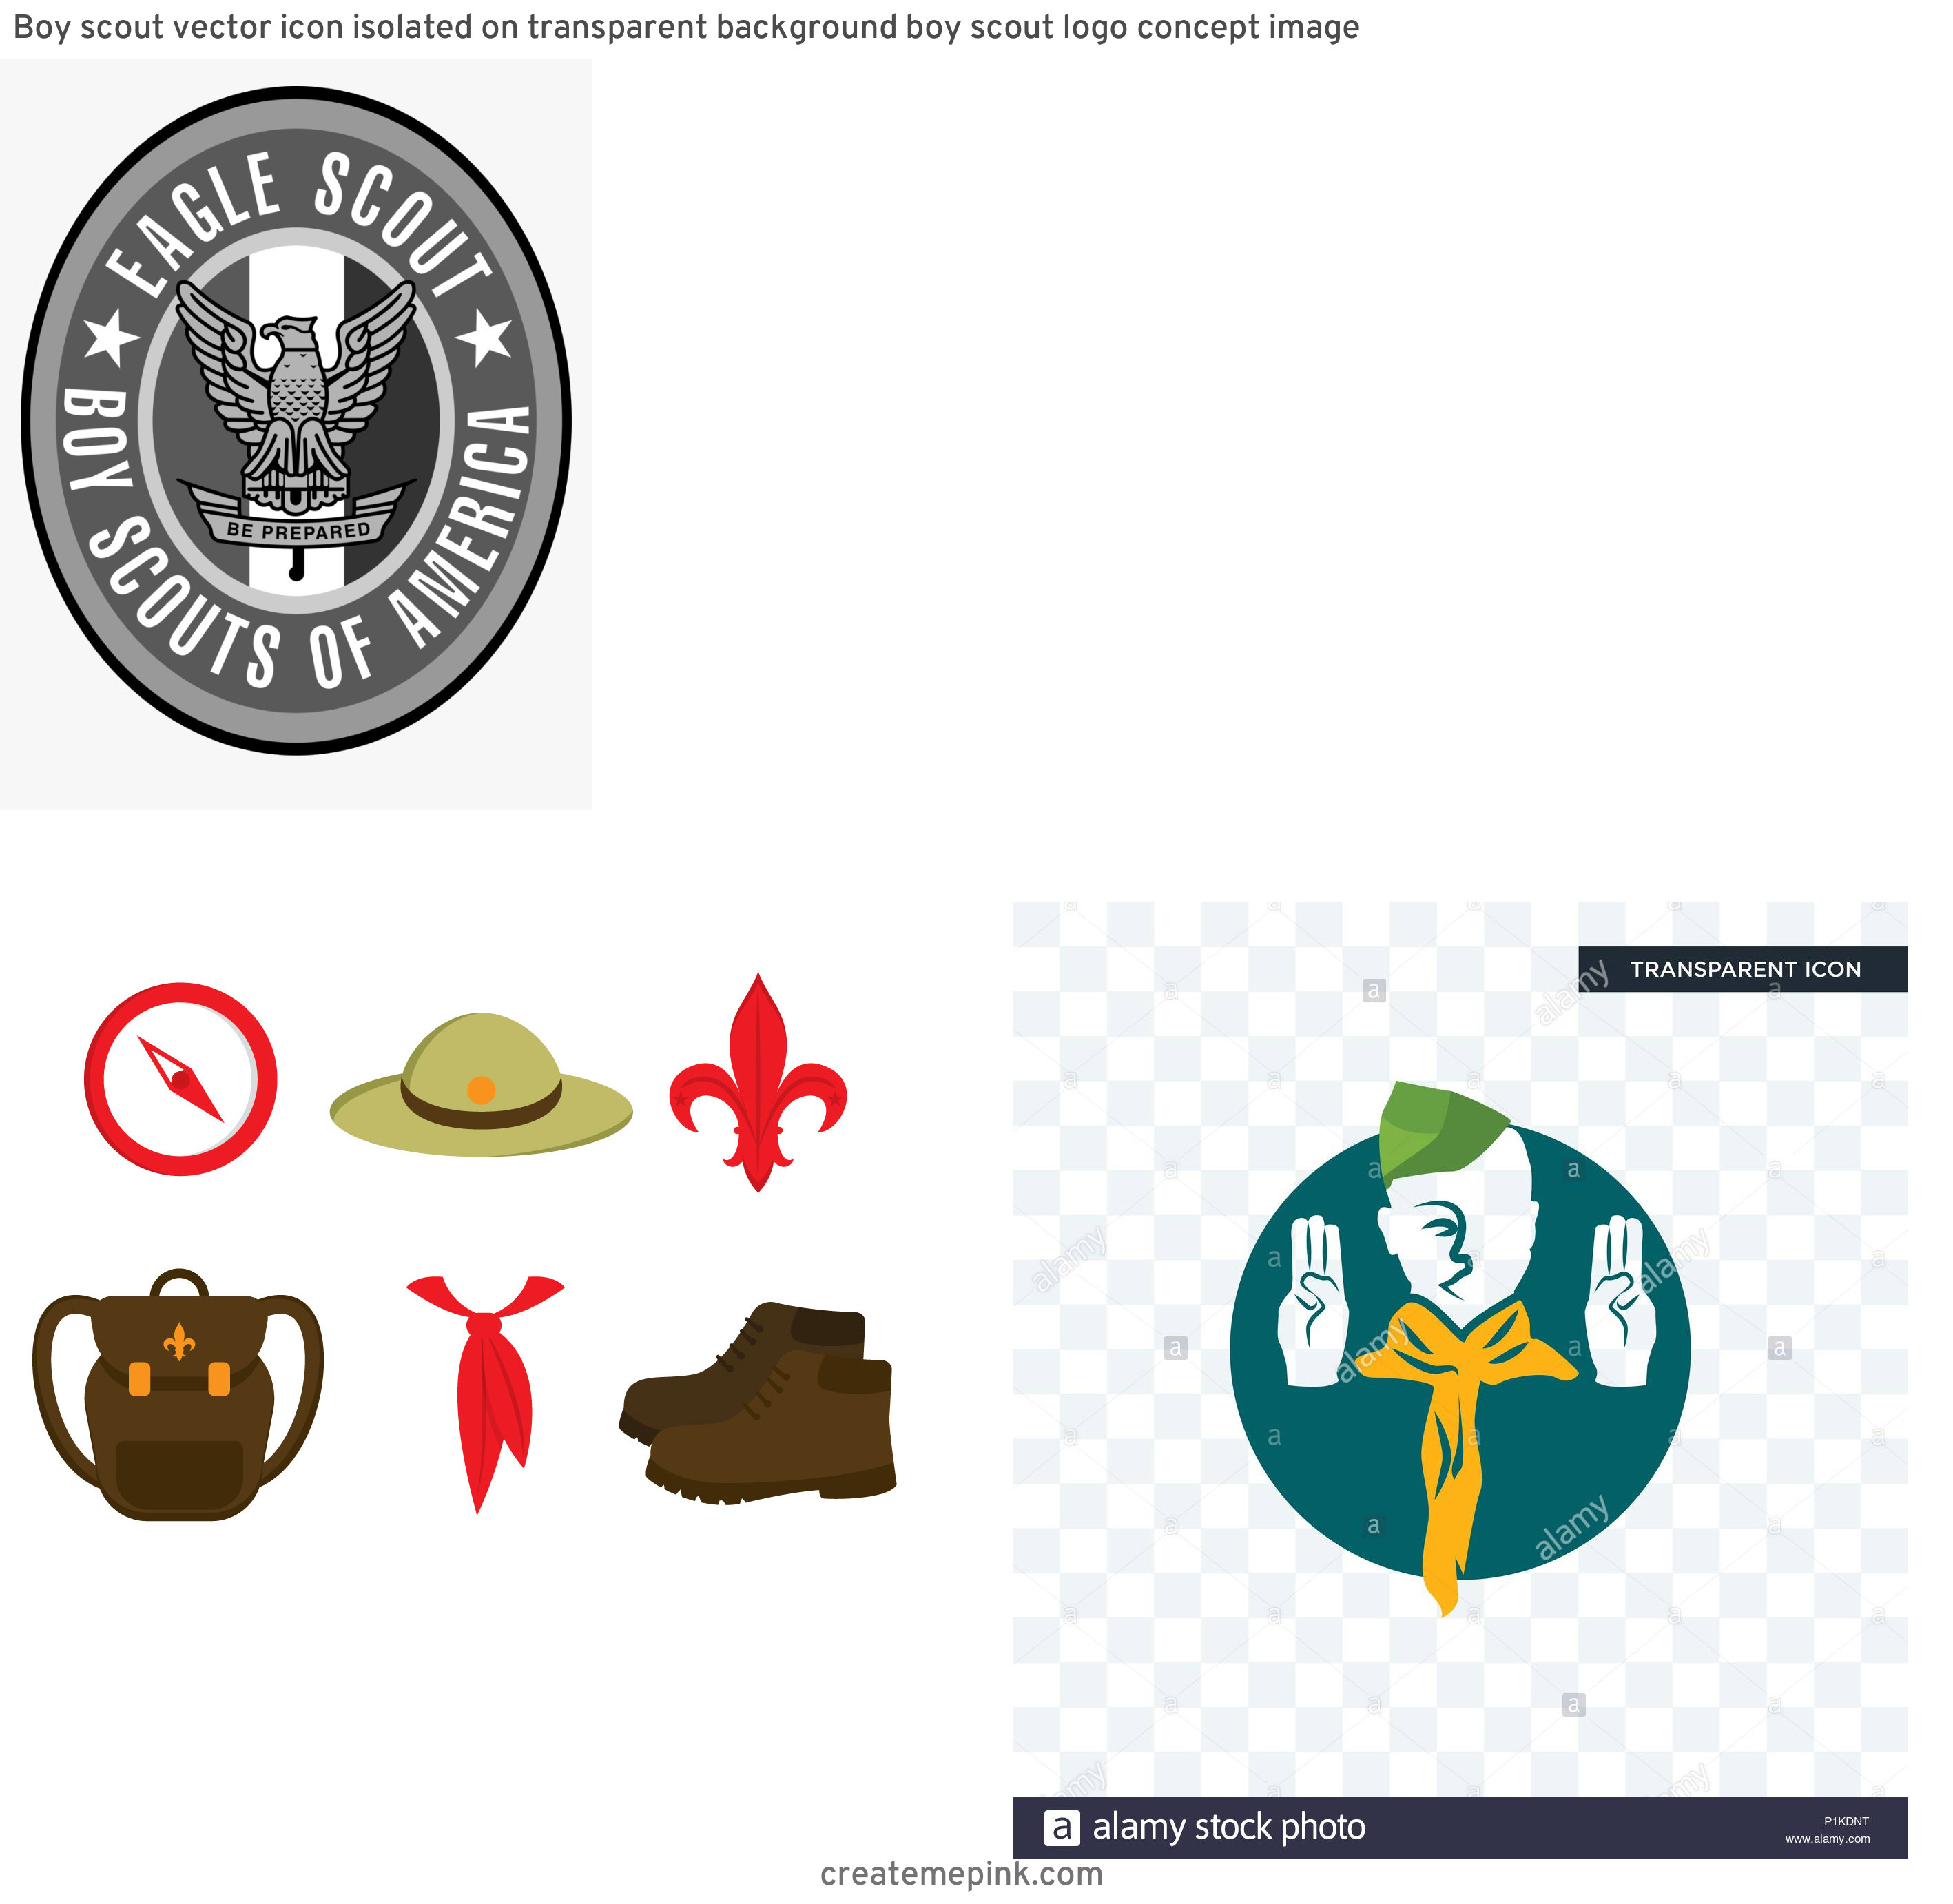 Boy Scout Logo Vector Art: Boy Scout Vector Icon Isolated On Transparent Background Boy Scout Logo Concept Image